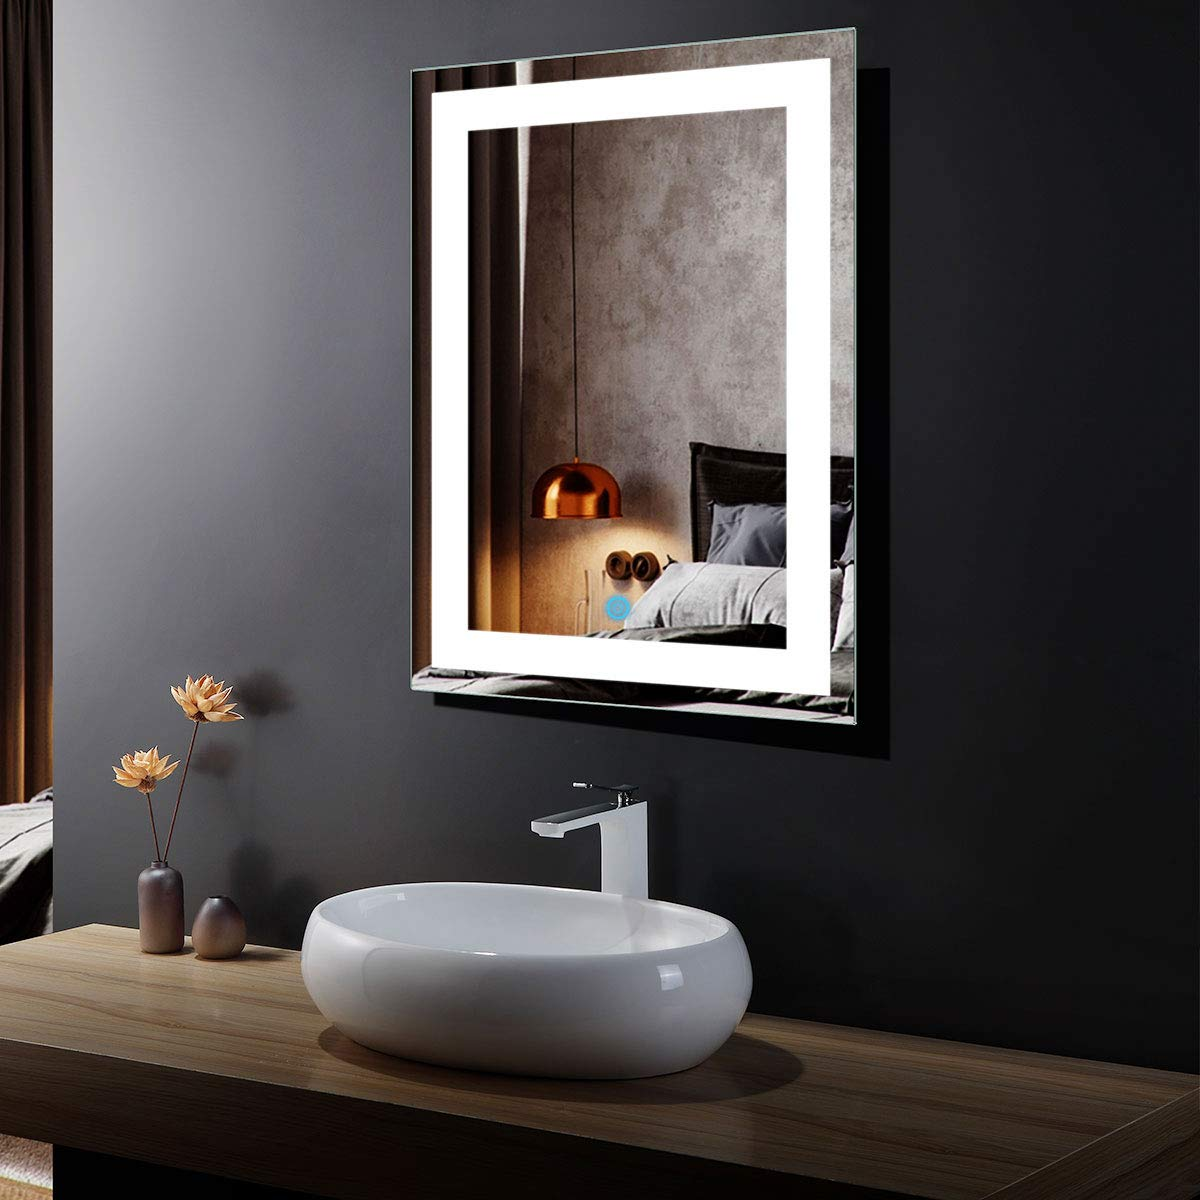 DP Home 24'' LED Lighted Illuminated Bathroom Vanity Wall Mirror with Touch Sensor, Vertical Rectangle White Mirrors 24 x 32 in E-CK010